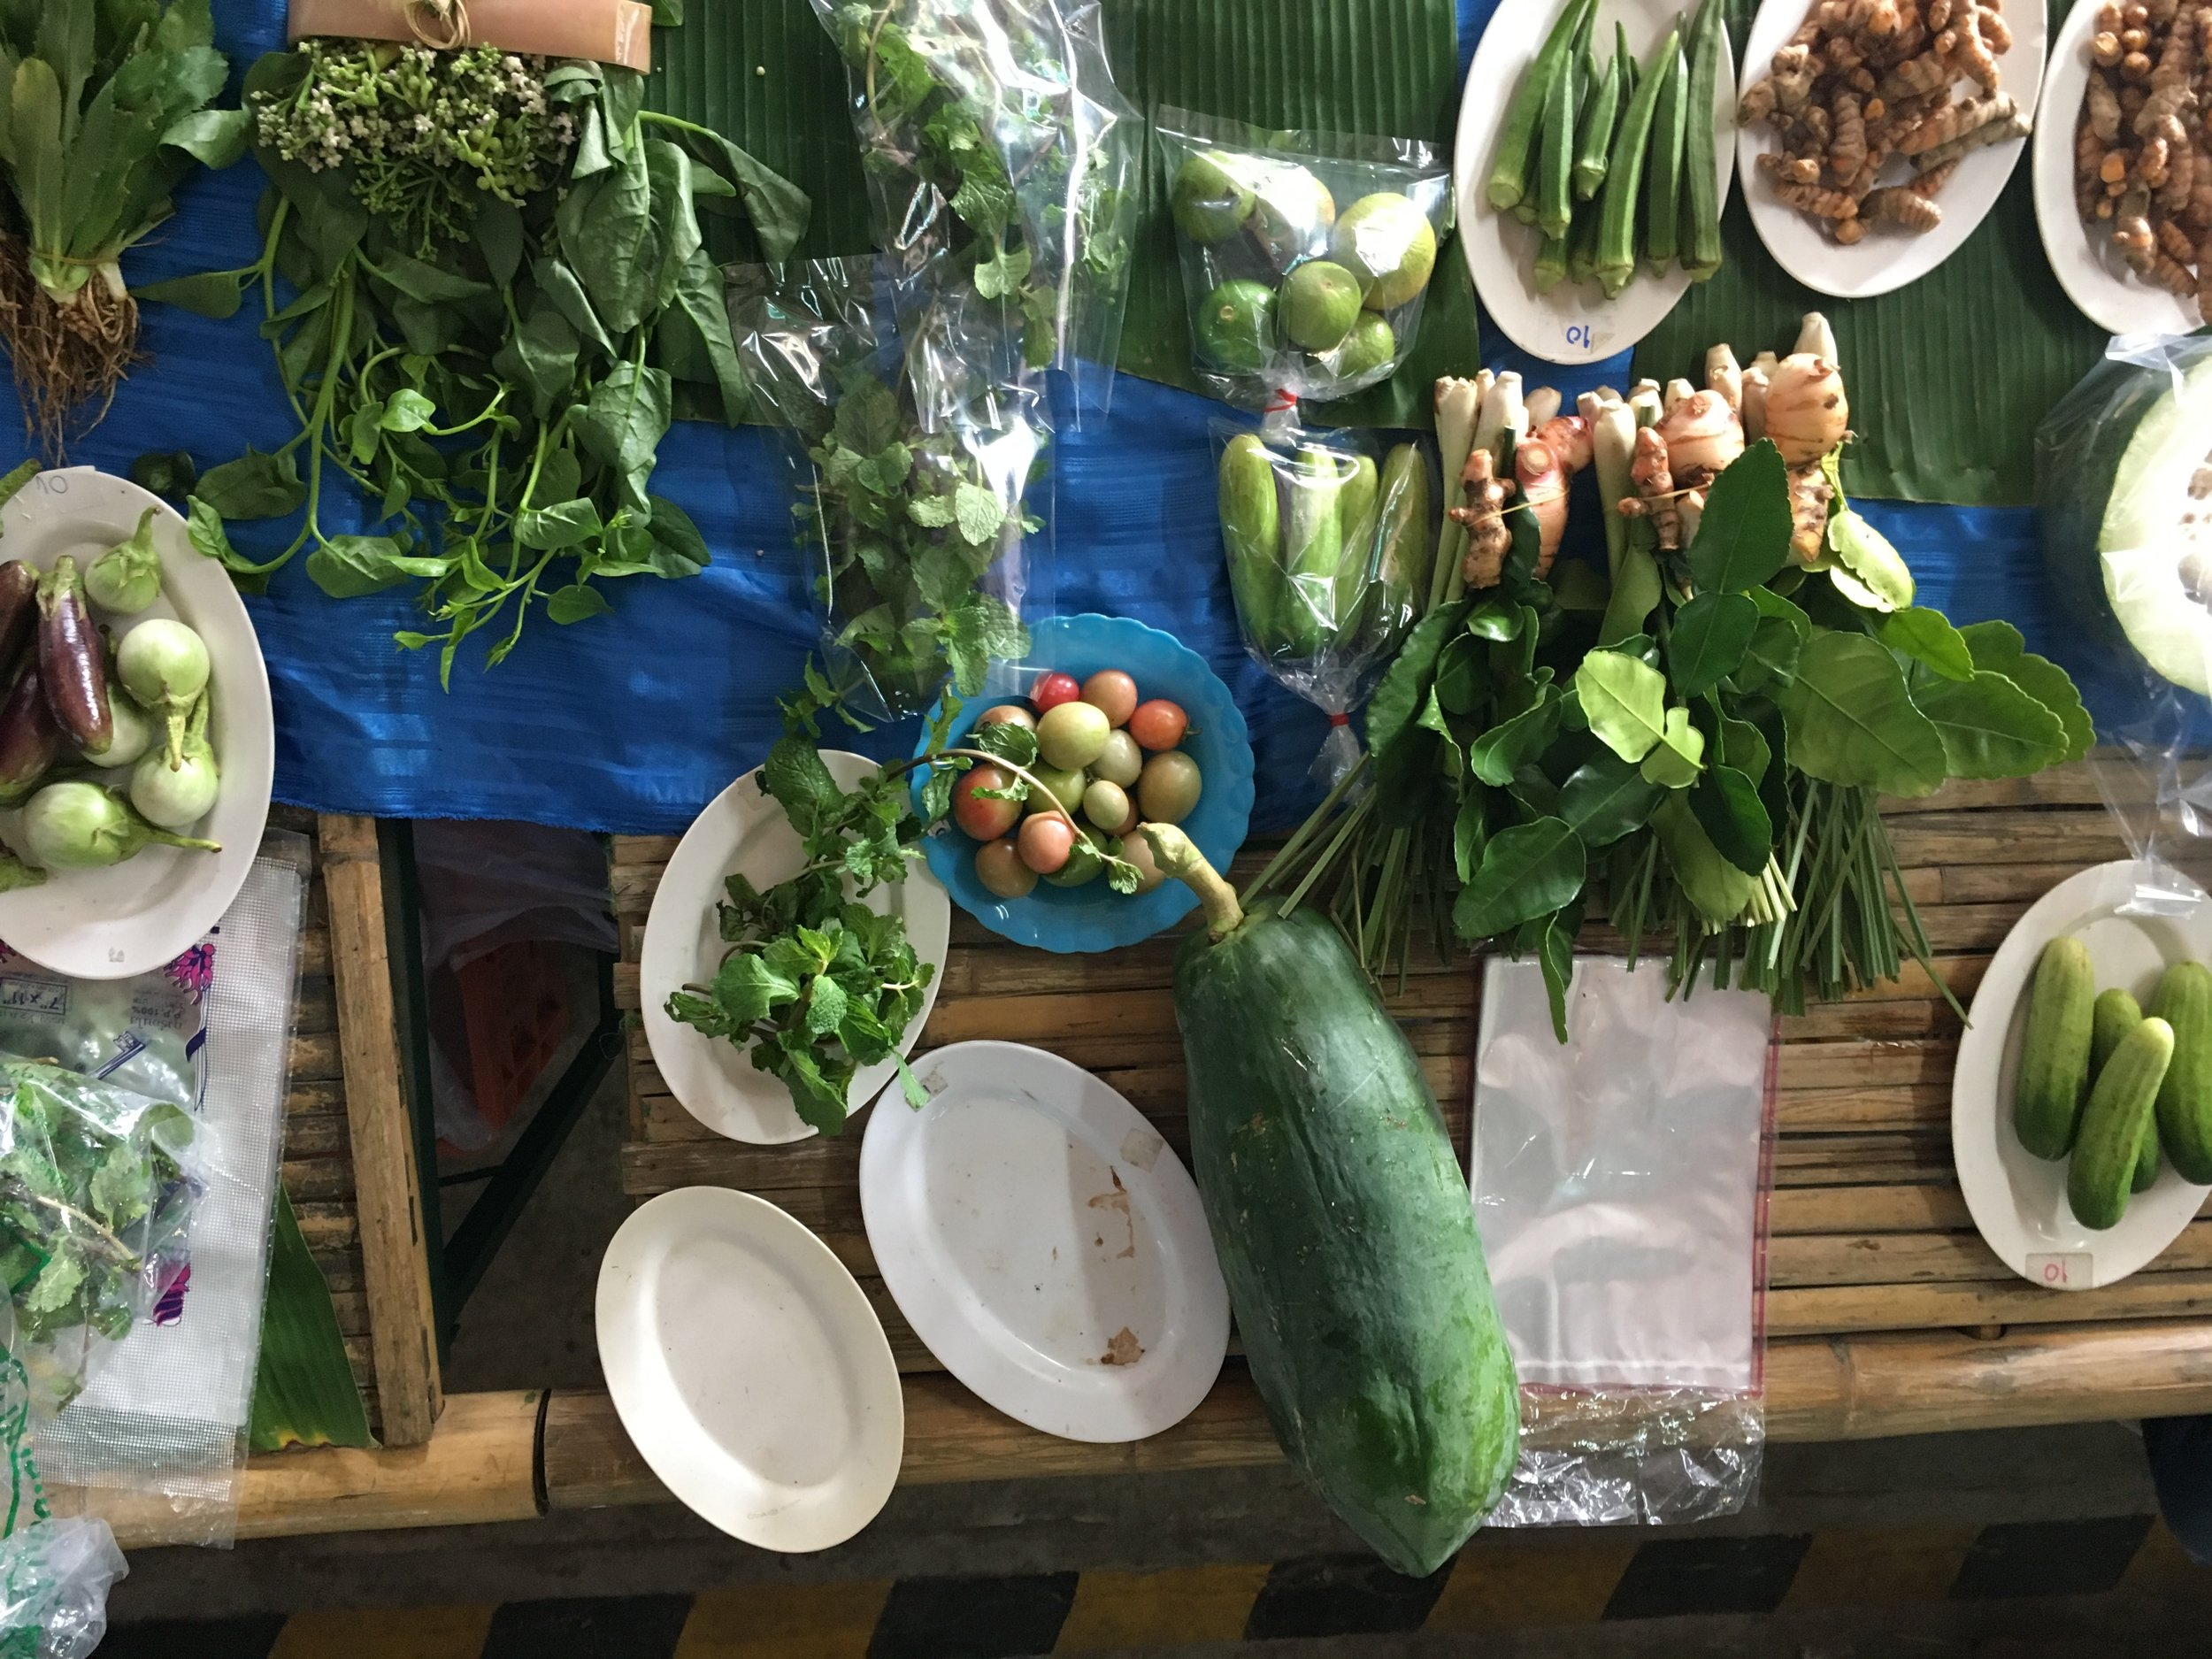 Morning food market in Chiang Mai